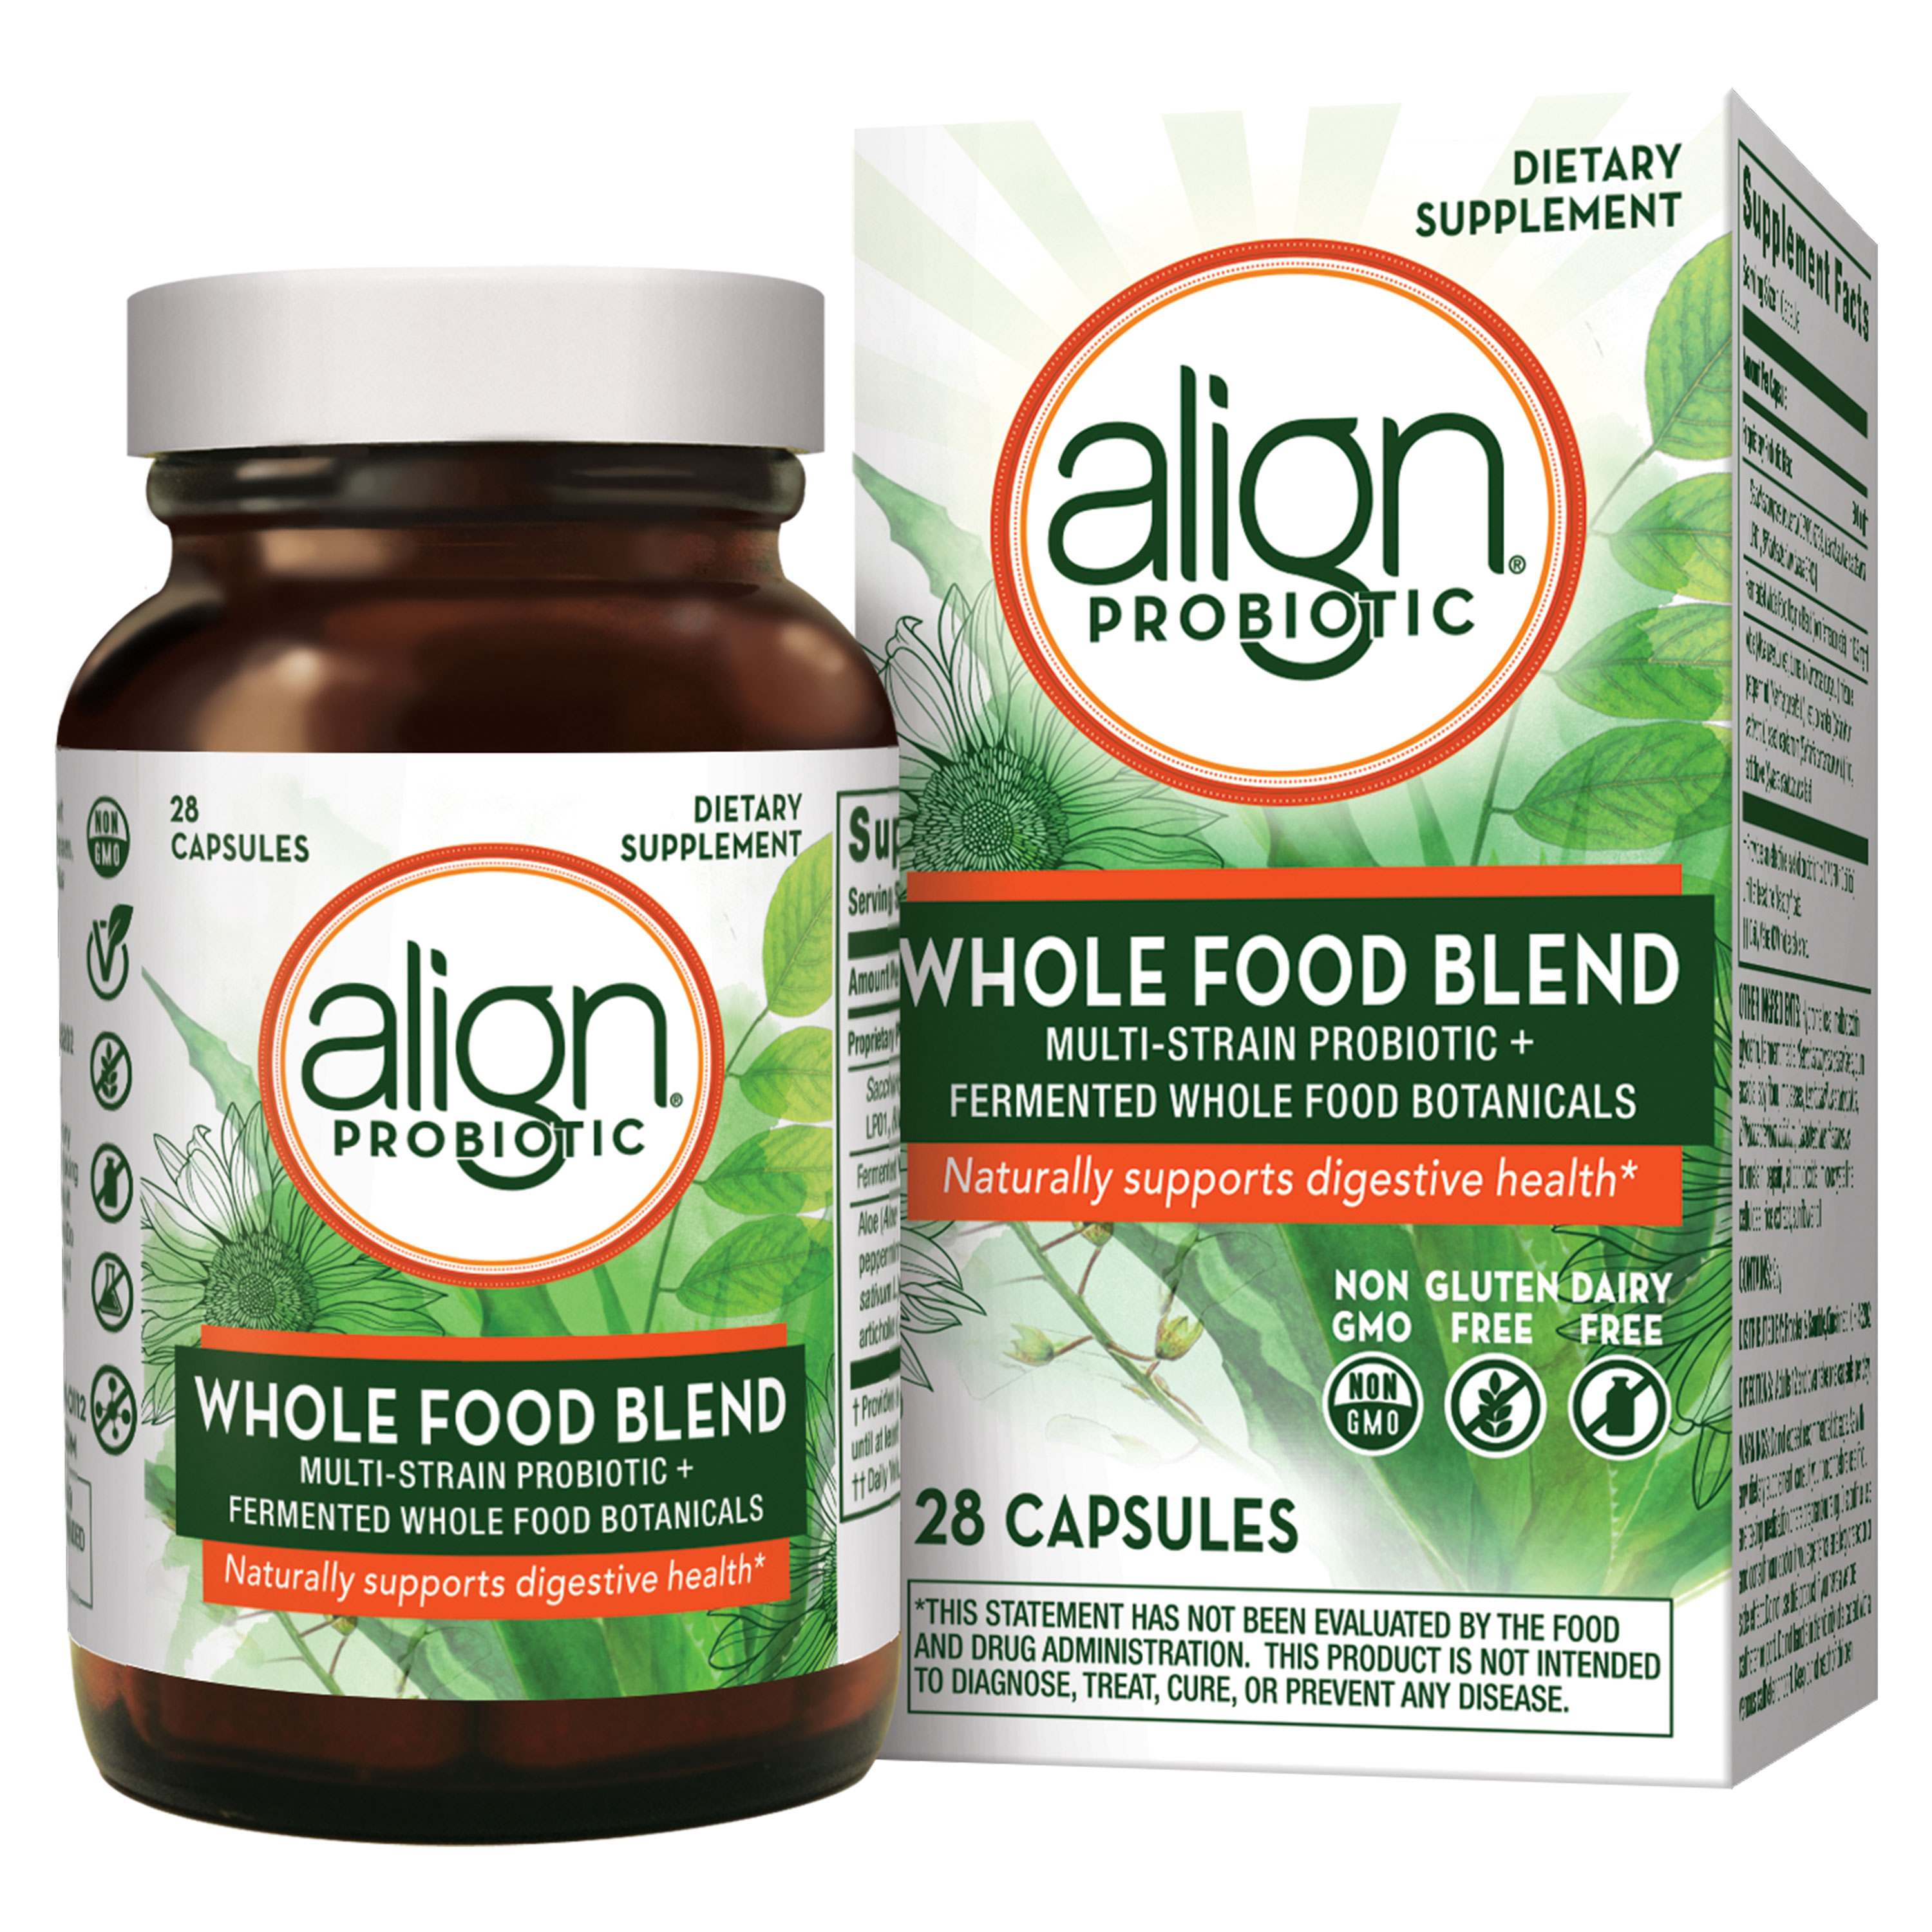 Align Whole Food Blend Multi-Strain Probiotic Supplement Made with Fermented Wholefood Botanicals, One a Day, Non-GMO, Vegan, Gluten Free, 28 Capsules